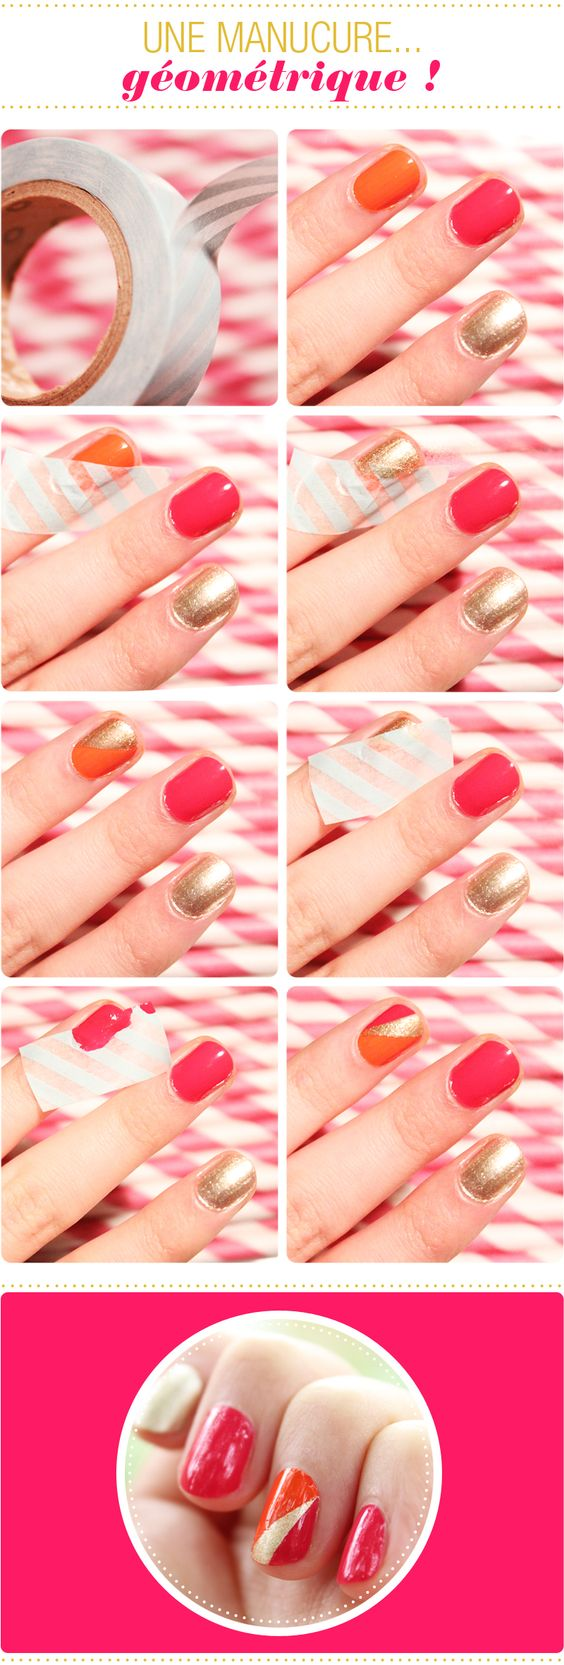 Tuto manucure g om trique au scotch vernis ongles nails pinterest awesome chang 39 e 3 - Tuto french manucure ...